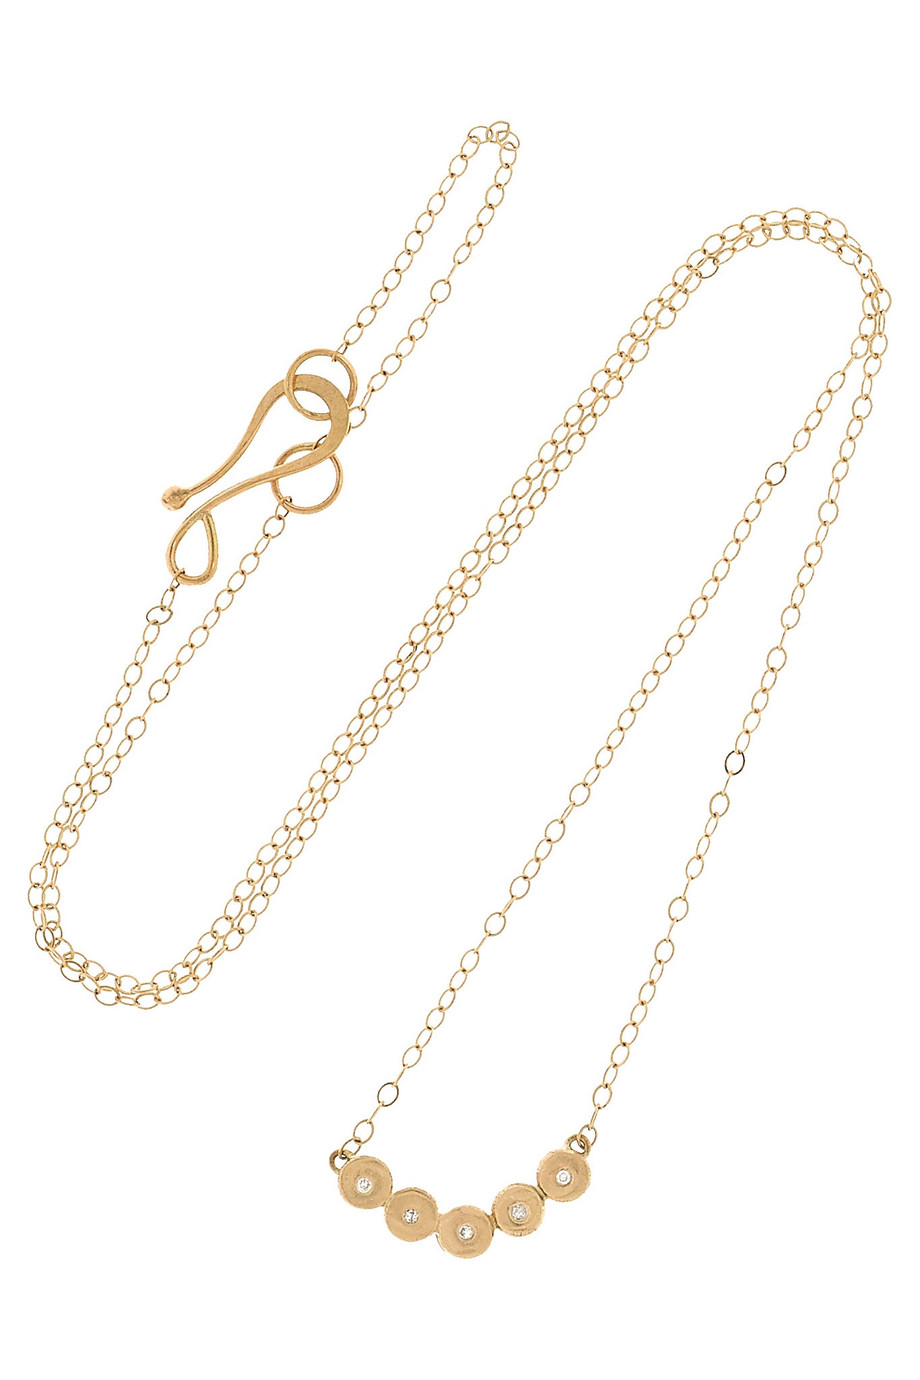 14-Karat Gold Diamond Necklace, Melissa Joy Manning, Women's